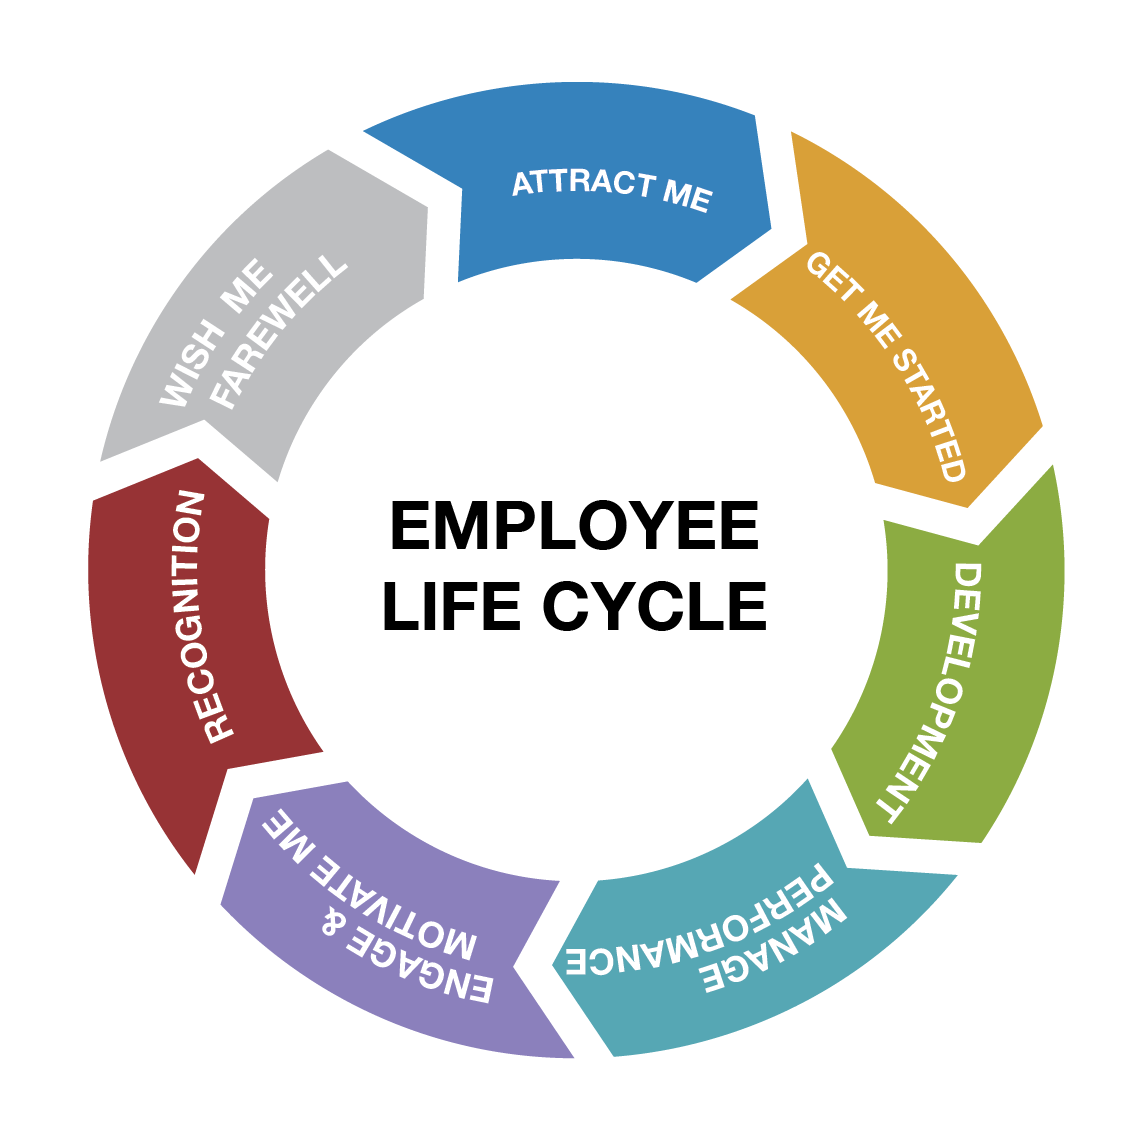 business life cycle The product life cycle means the sequence of stages that every product progresses through until it reaches the stage where it is finally abandoned or discontinued from the market.